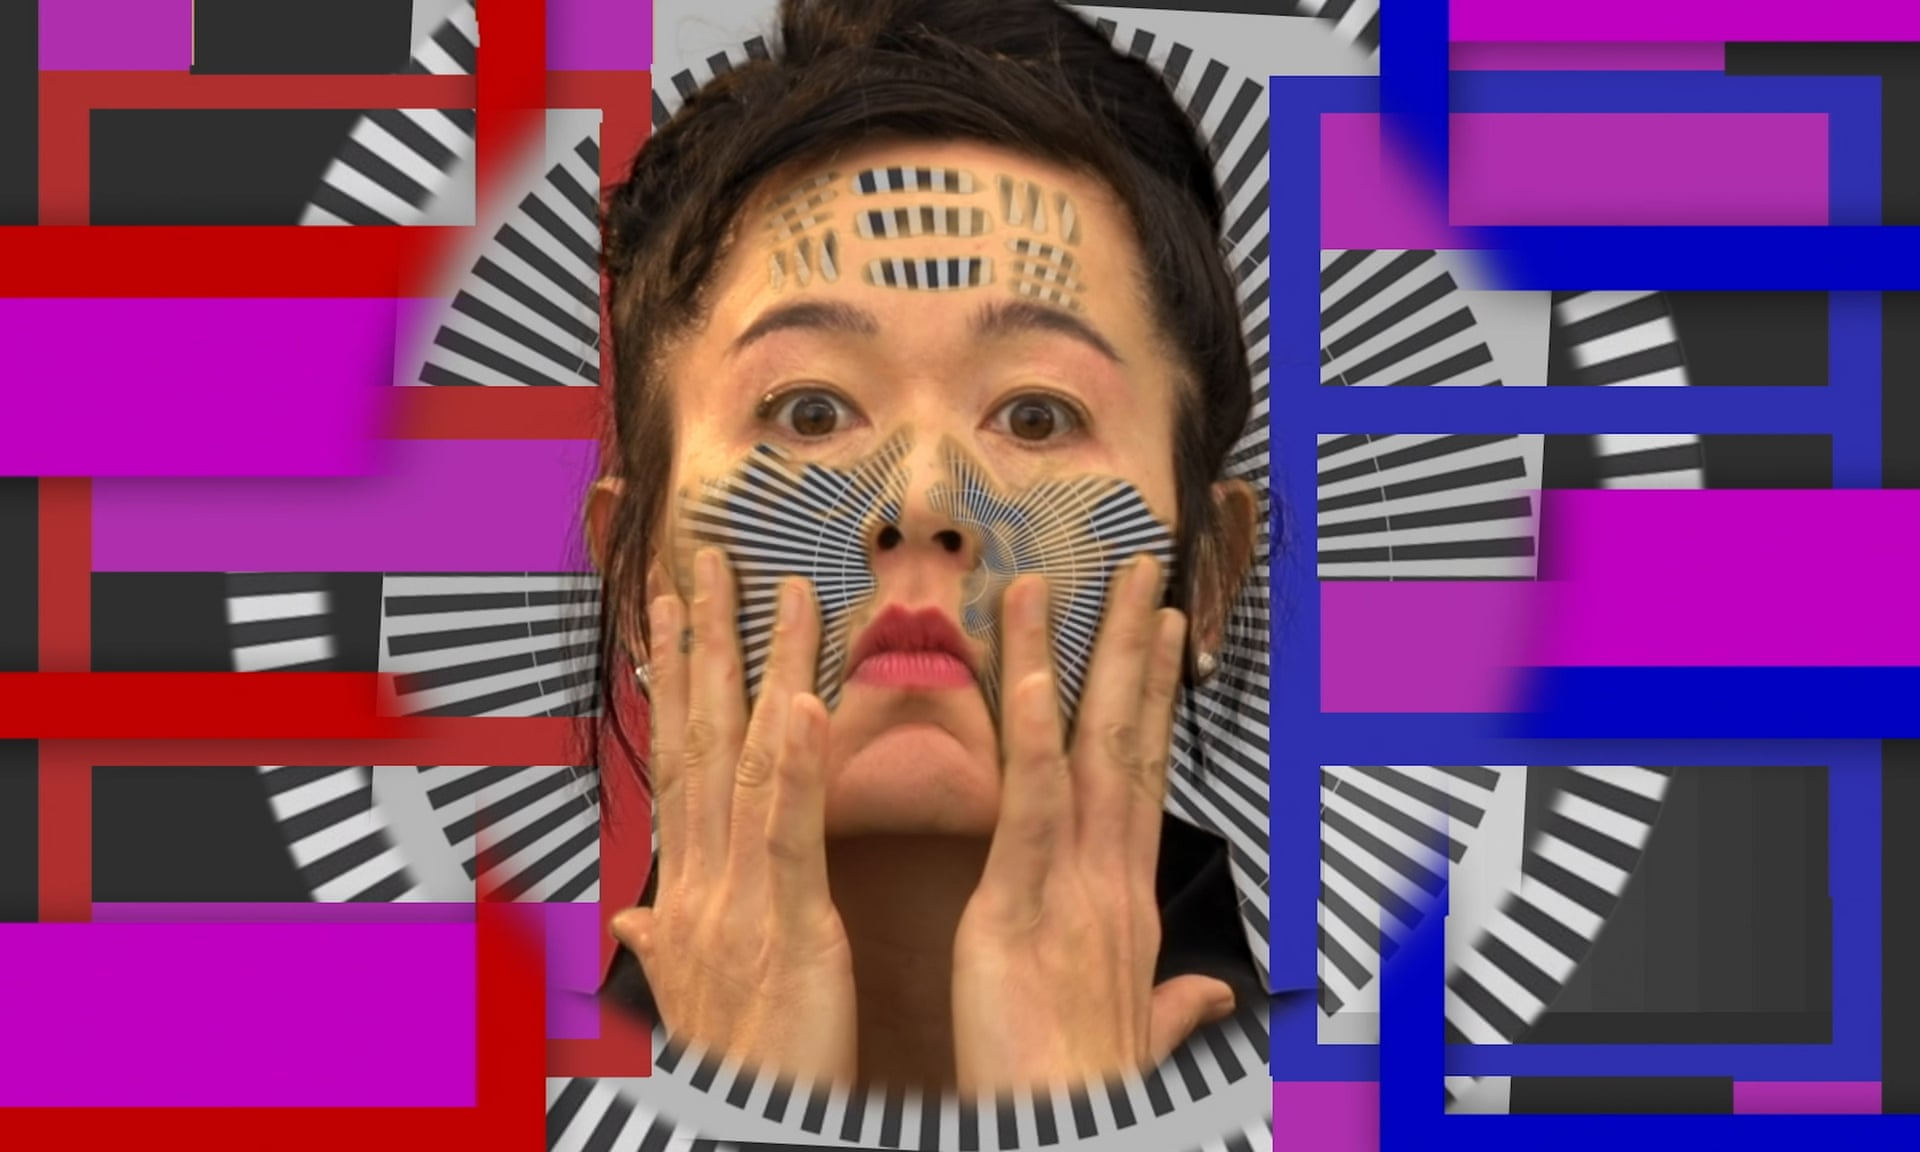 Hito Steyerl_How Not to Be Seen A Fucking Didactic Educational. MOV File, 2013. Photograph Hito Steyerl courtesy of the artist and Andrew Kreps Gallery New York